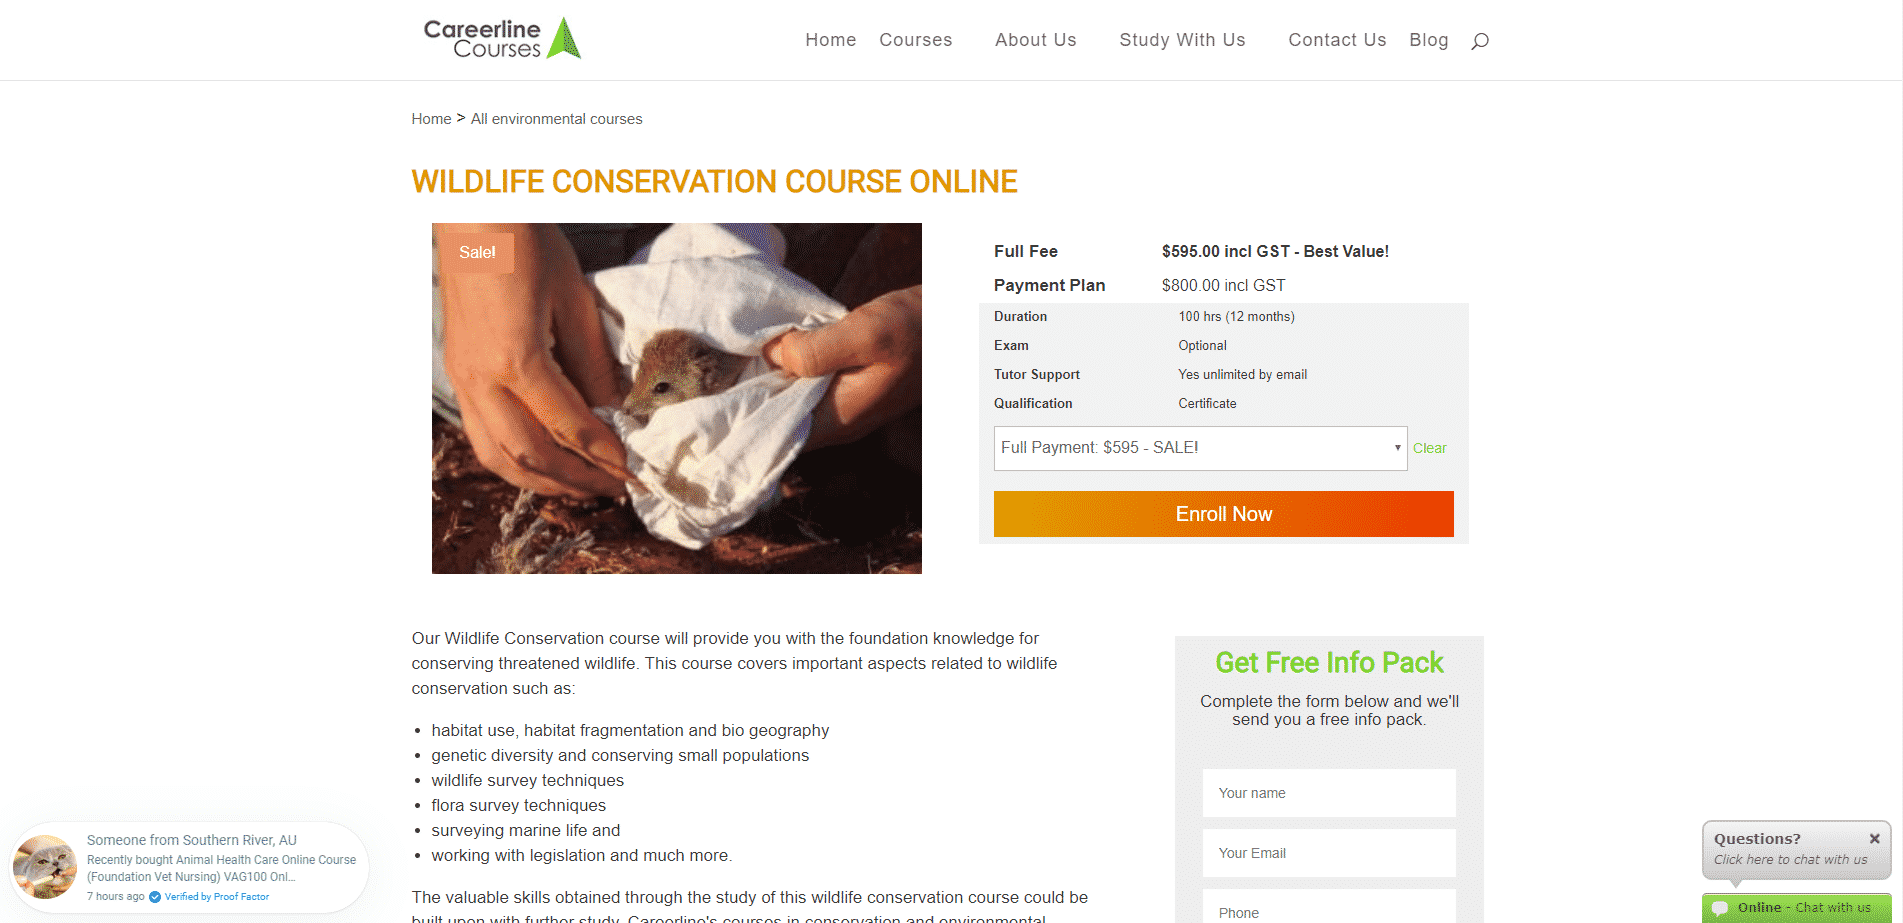 careerlinecourses Learn Conservation Lessons Online